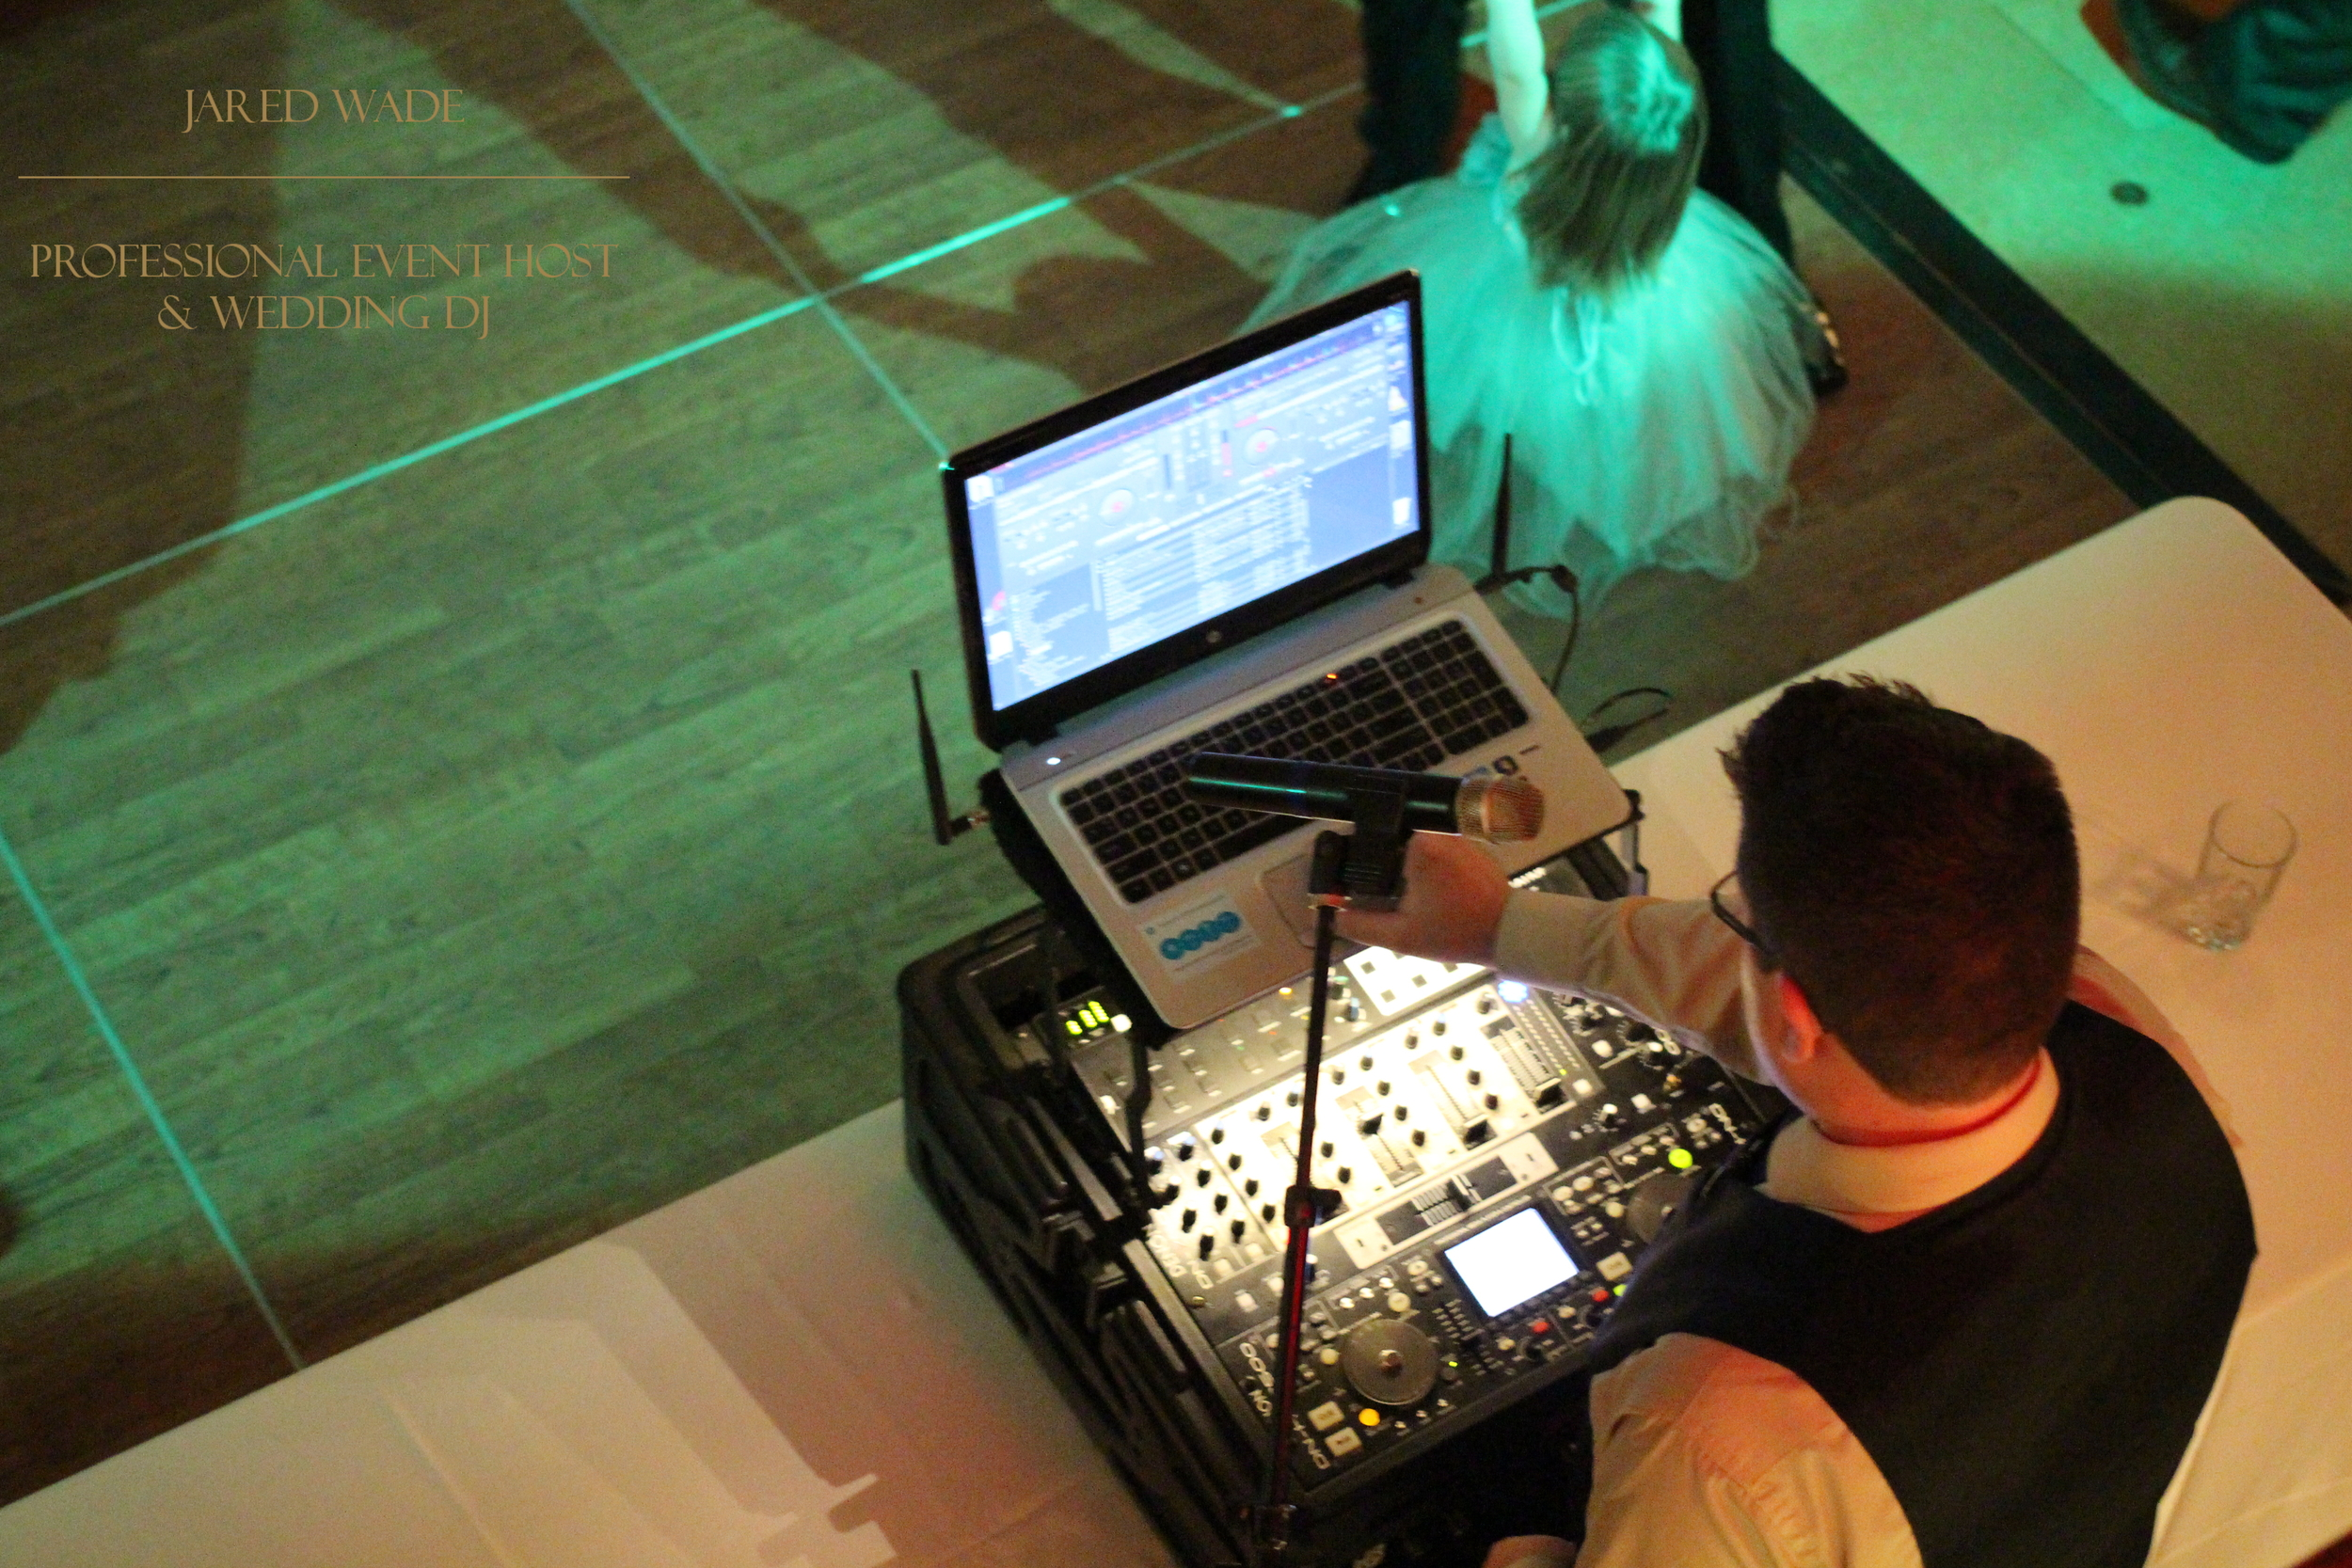 Jared Wade Professional Event Host | Best Indianapolis Wedding DJ | Indianapolis Indiana Wedding | Indiana Wedding DJ | Jared Wade Professional Wedding DJ | Indianapolis Dance Party